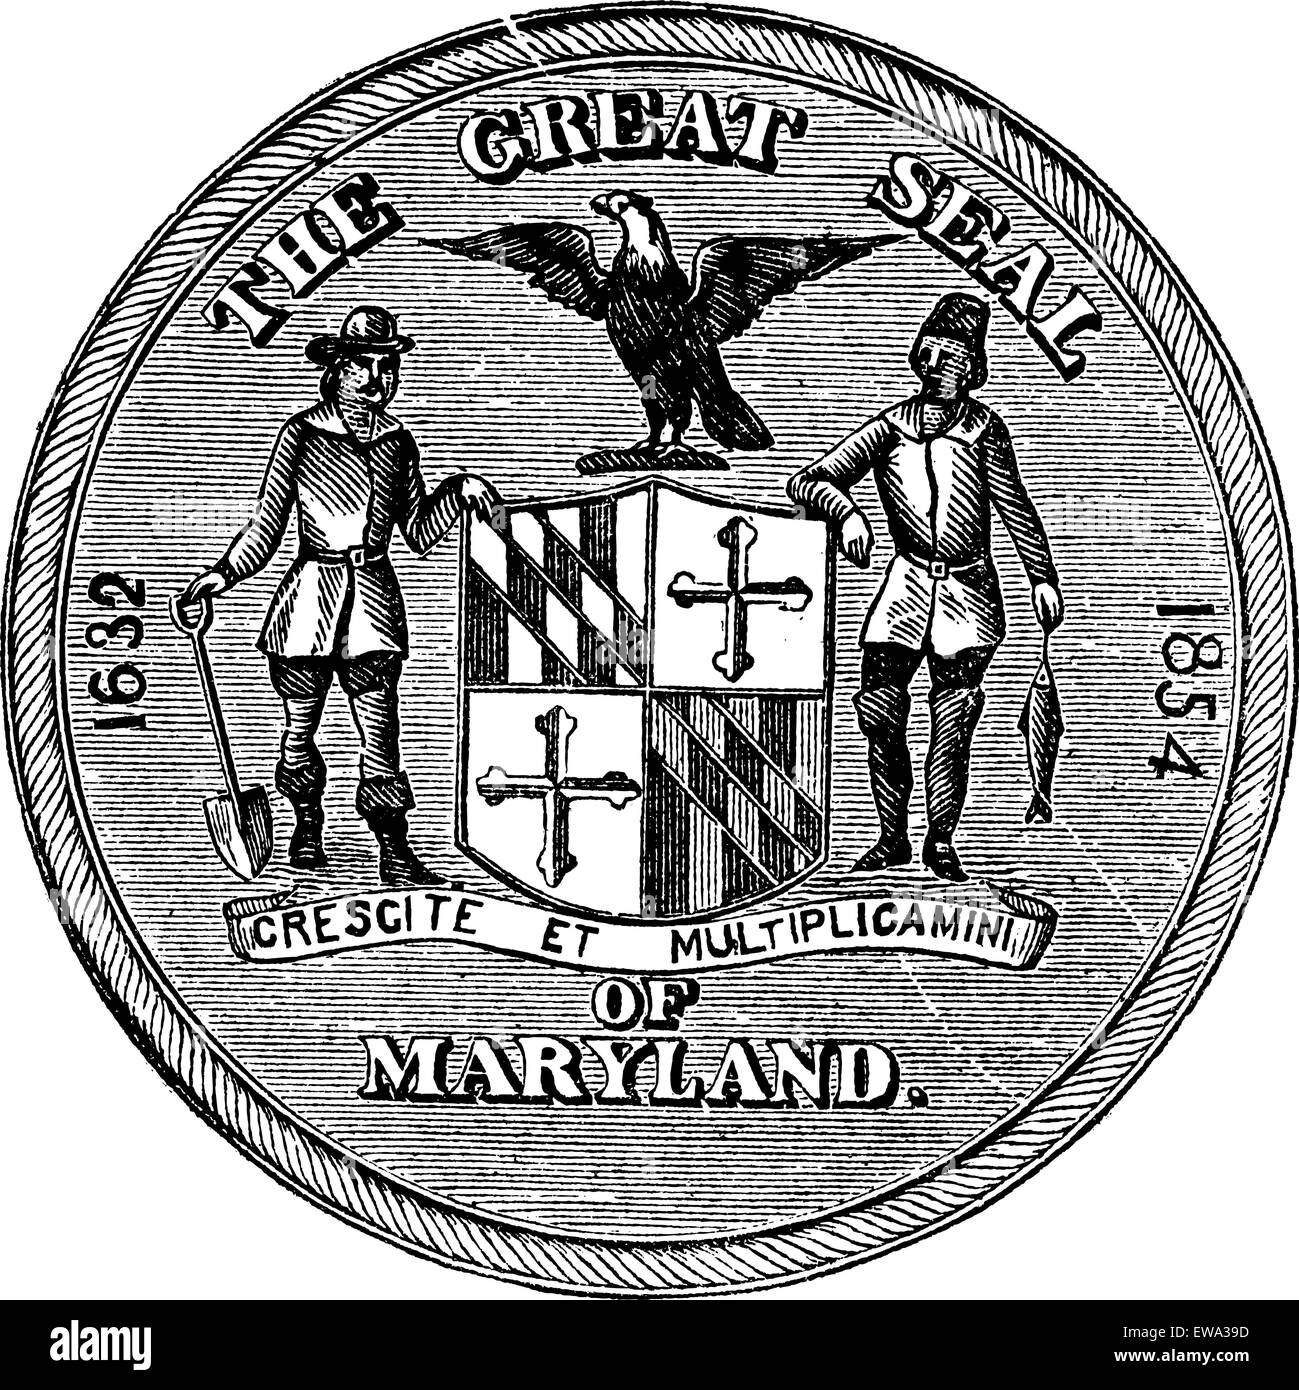 Great Seal Of The State Of Maryland United States Vintage Stock Vector Image Art Alamy